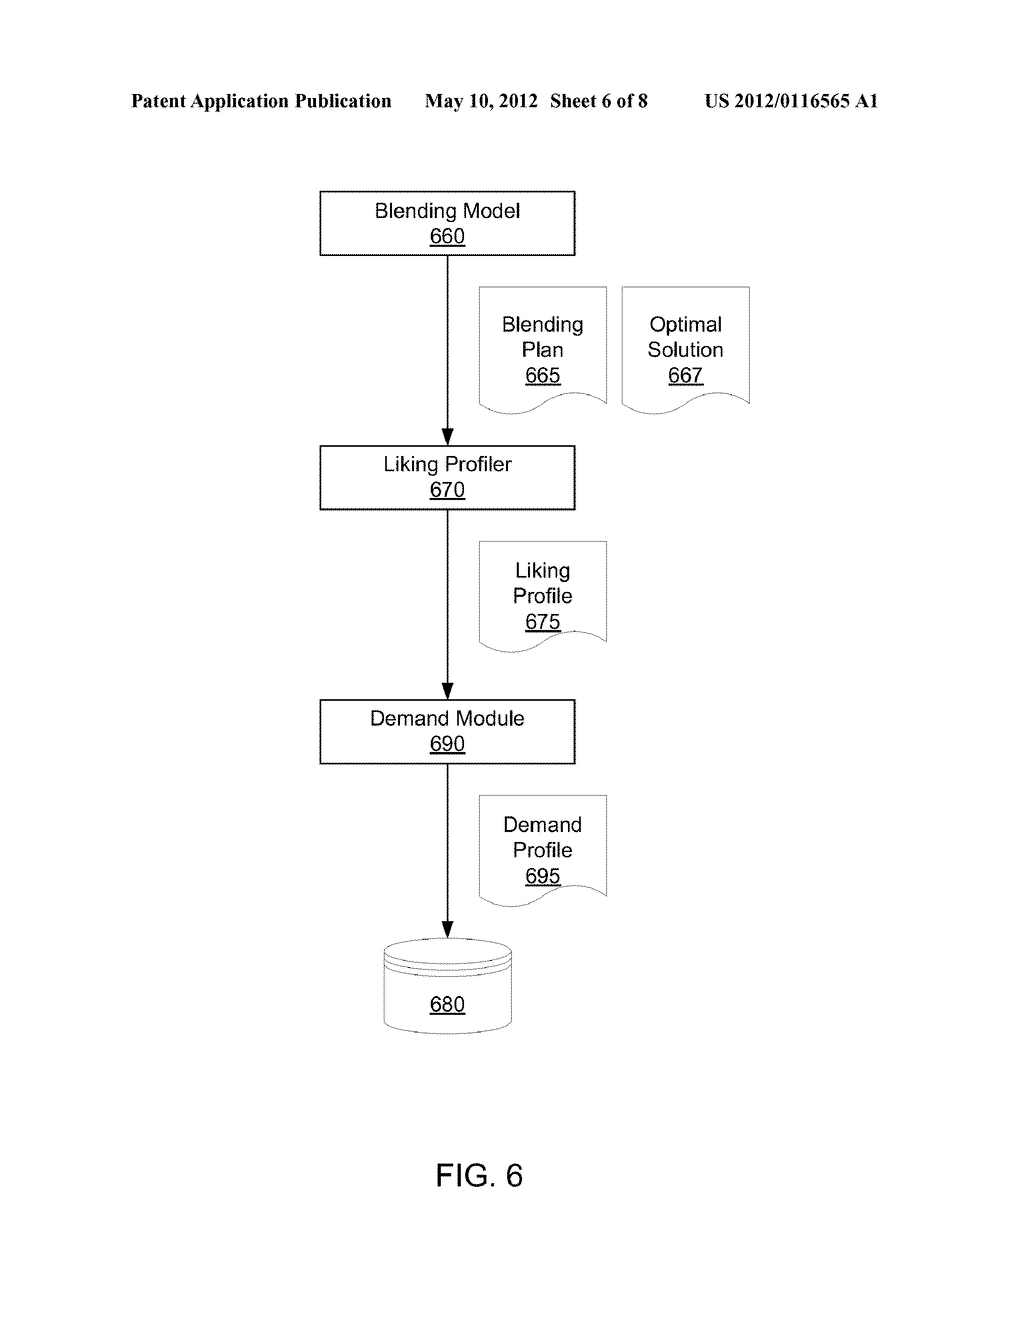 Total Quality Management System For Optimizing Drink Process Flow Purpose Of Diagram Schematic And Image 07